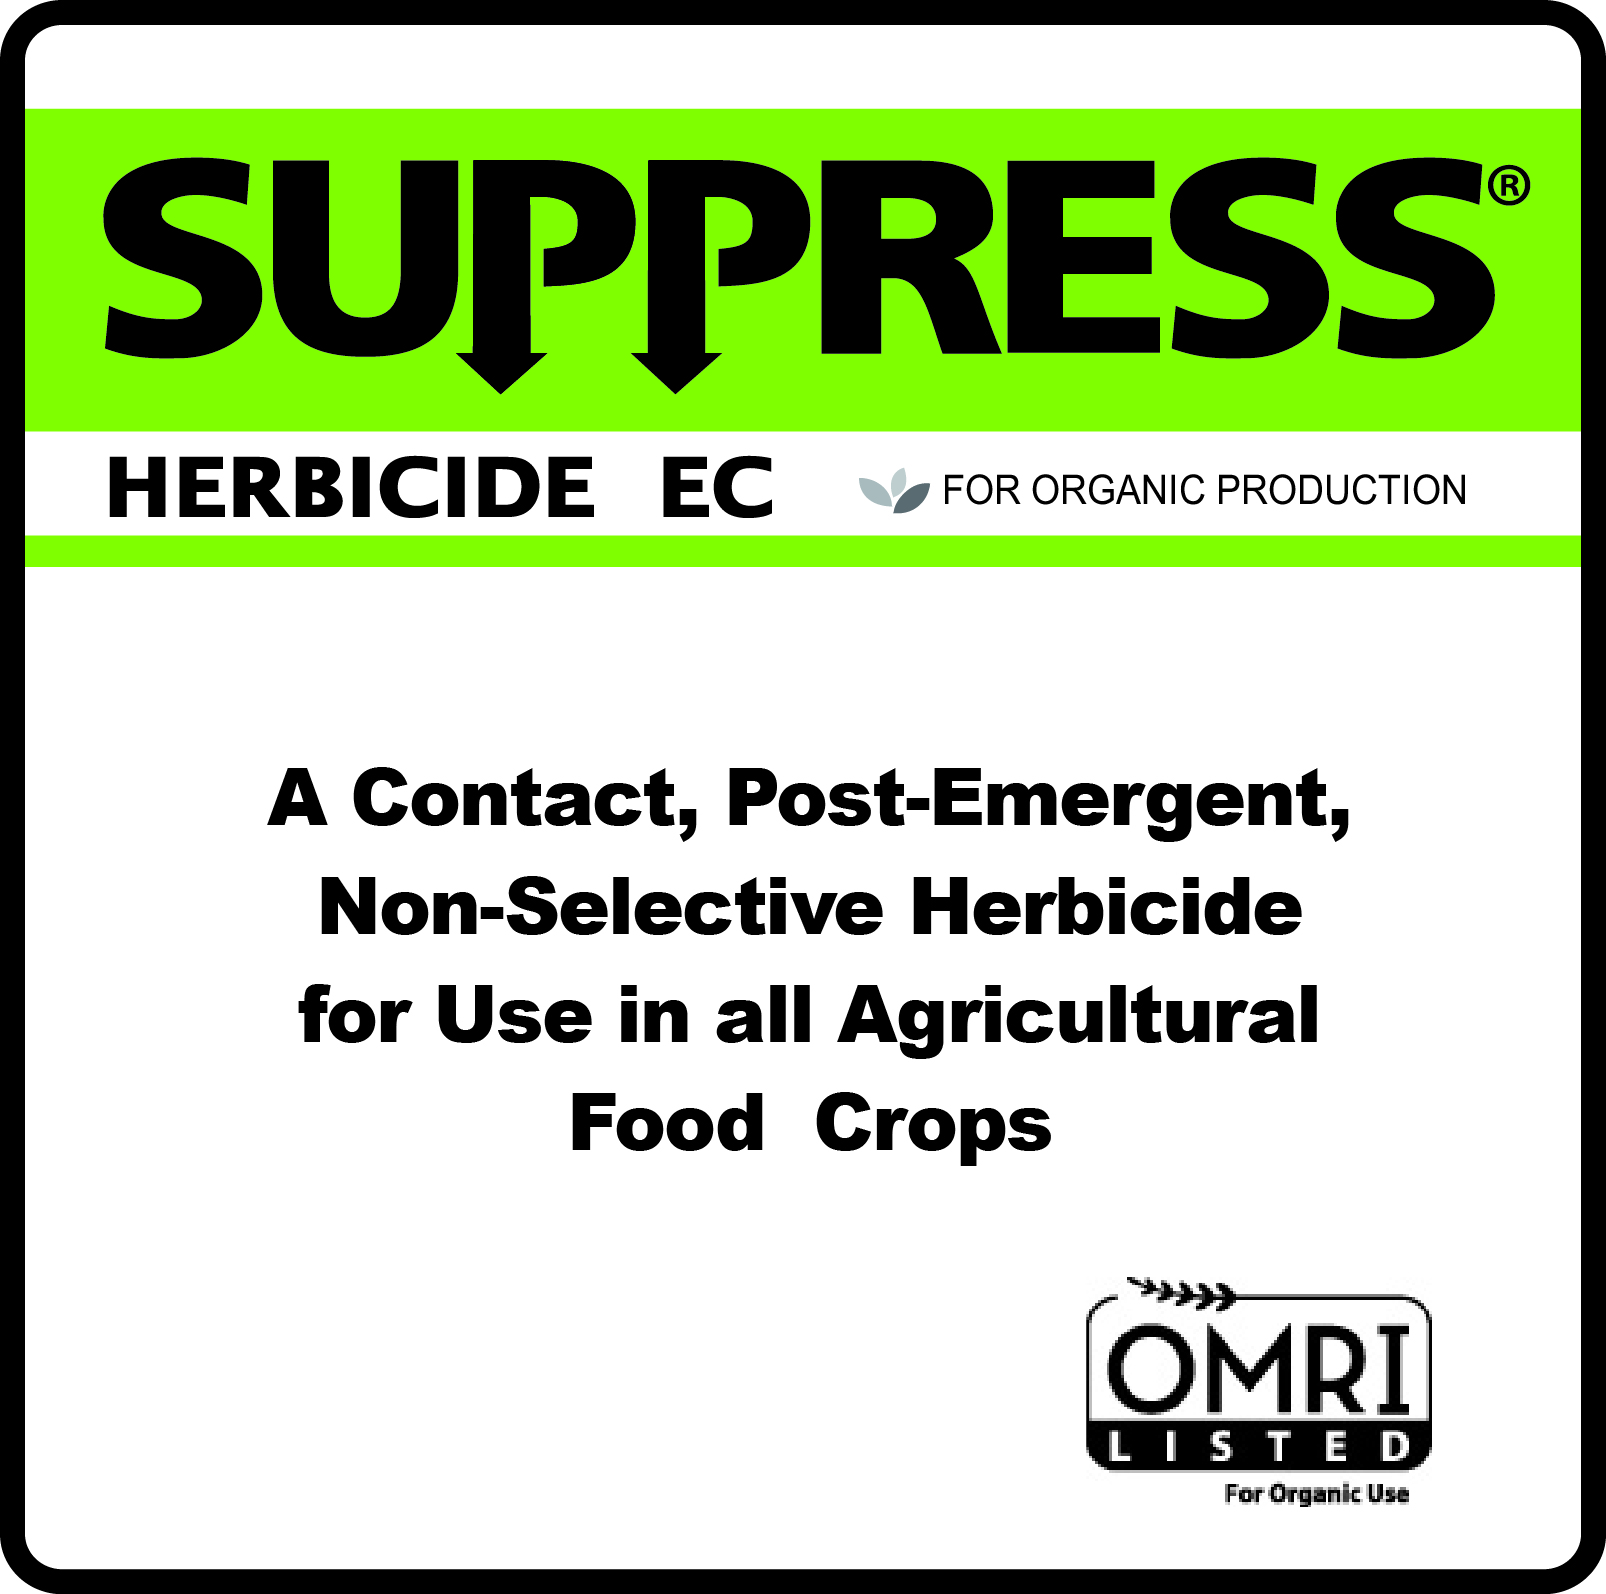 Westbridge Receives California Approval for its New SUPPRESS®  Herbicide EC